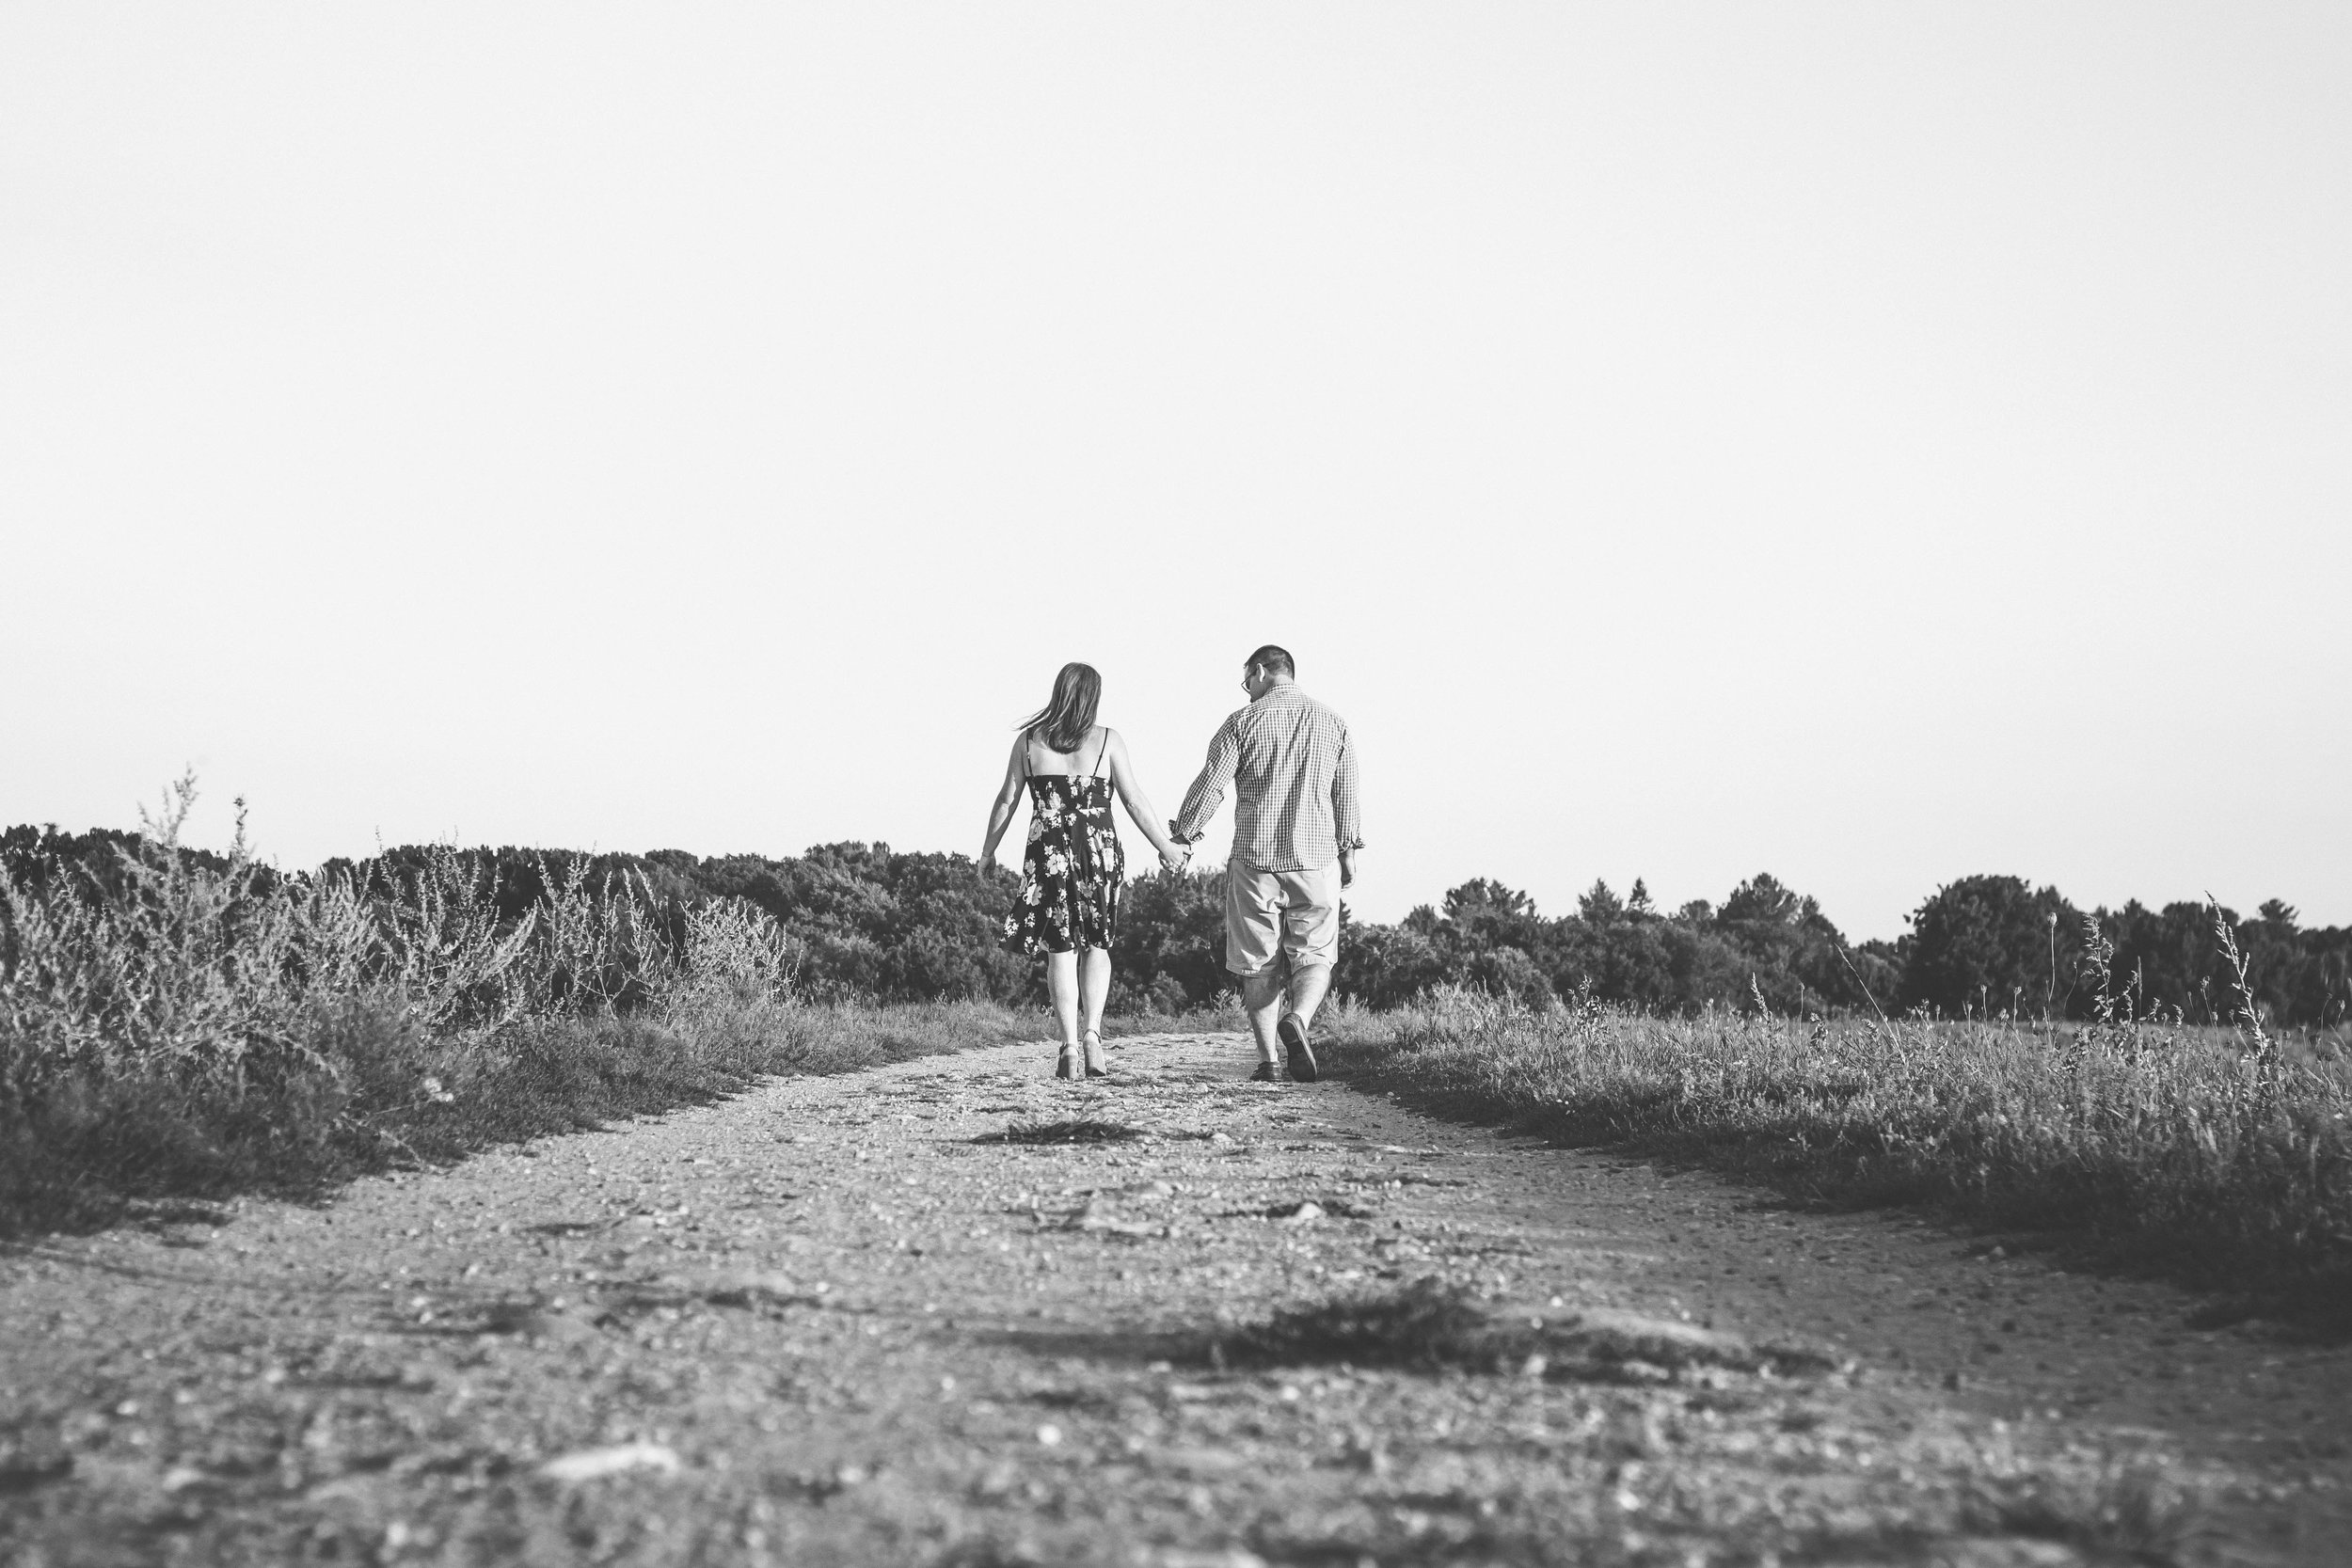 couple walking along path at sunset in black and white